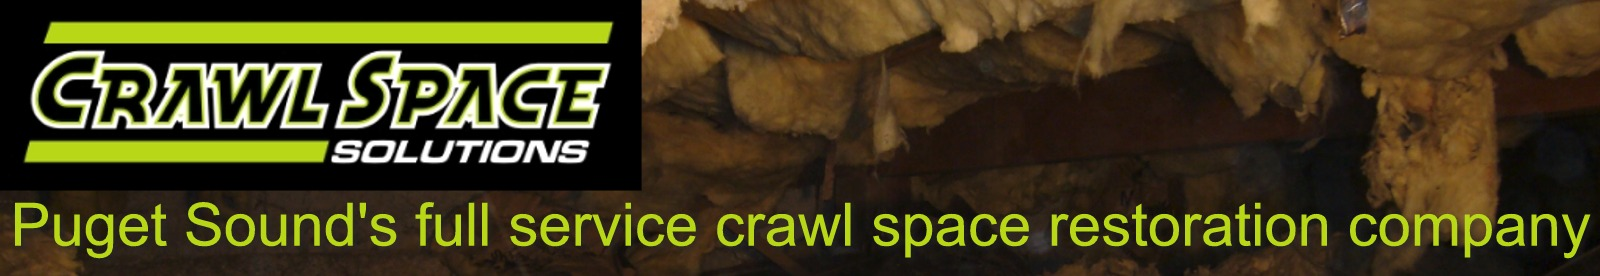 Crawlspace Services - Gig Harbor & Puget Sound crawl space restoration company